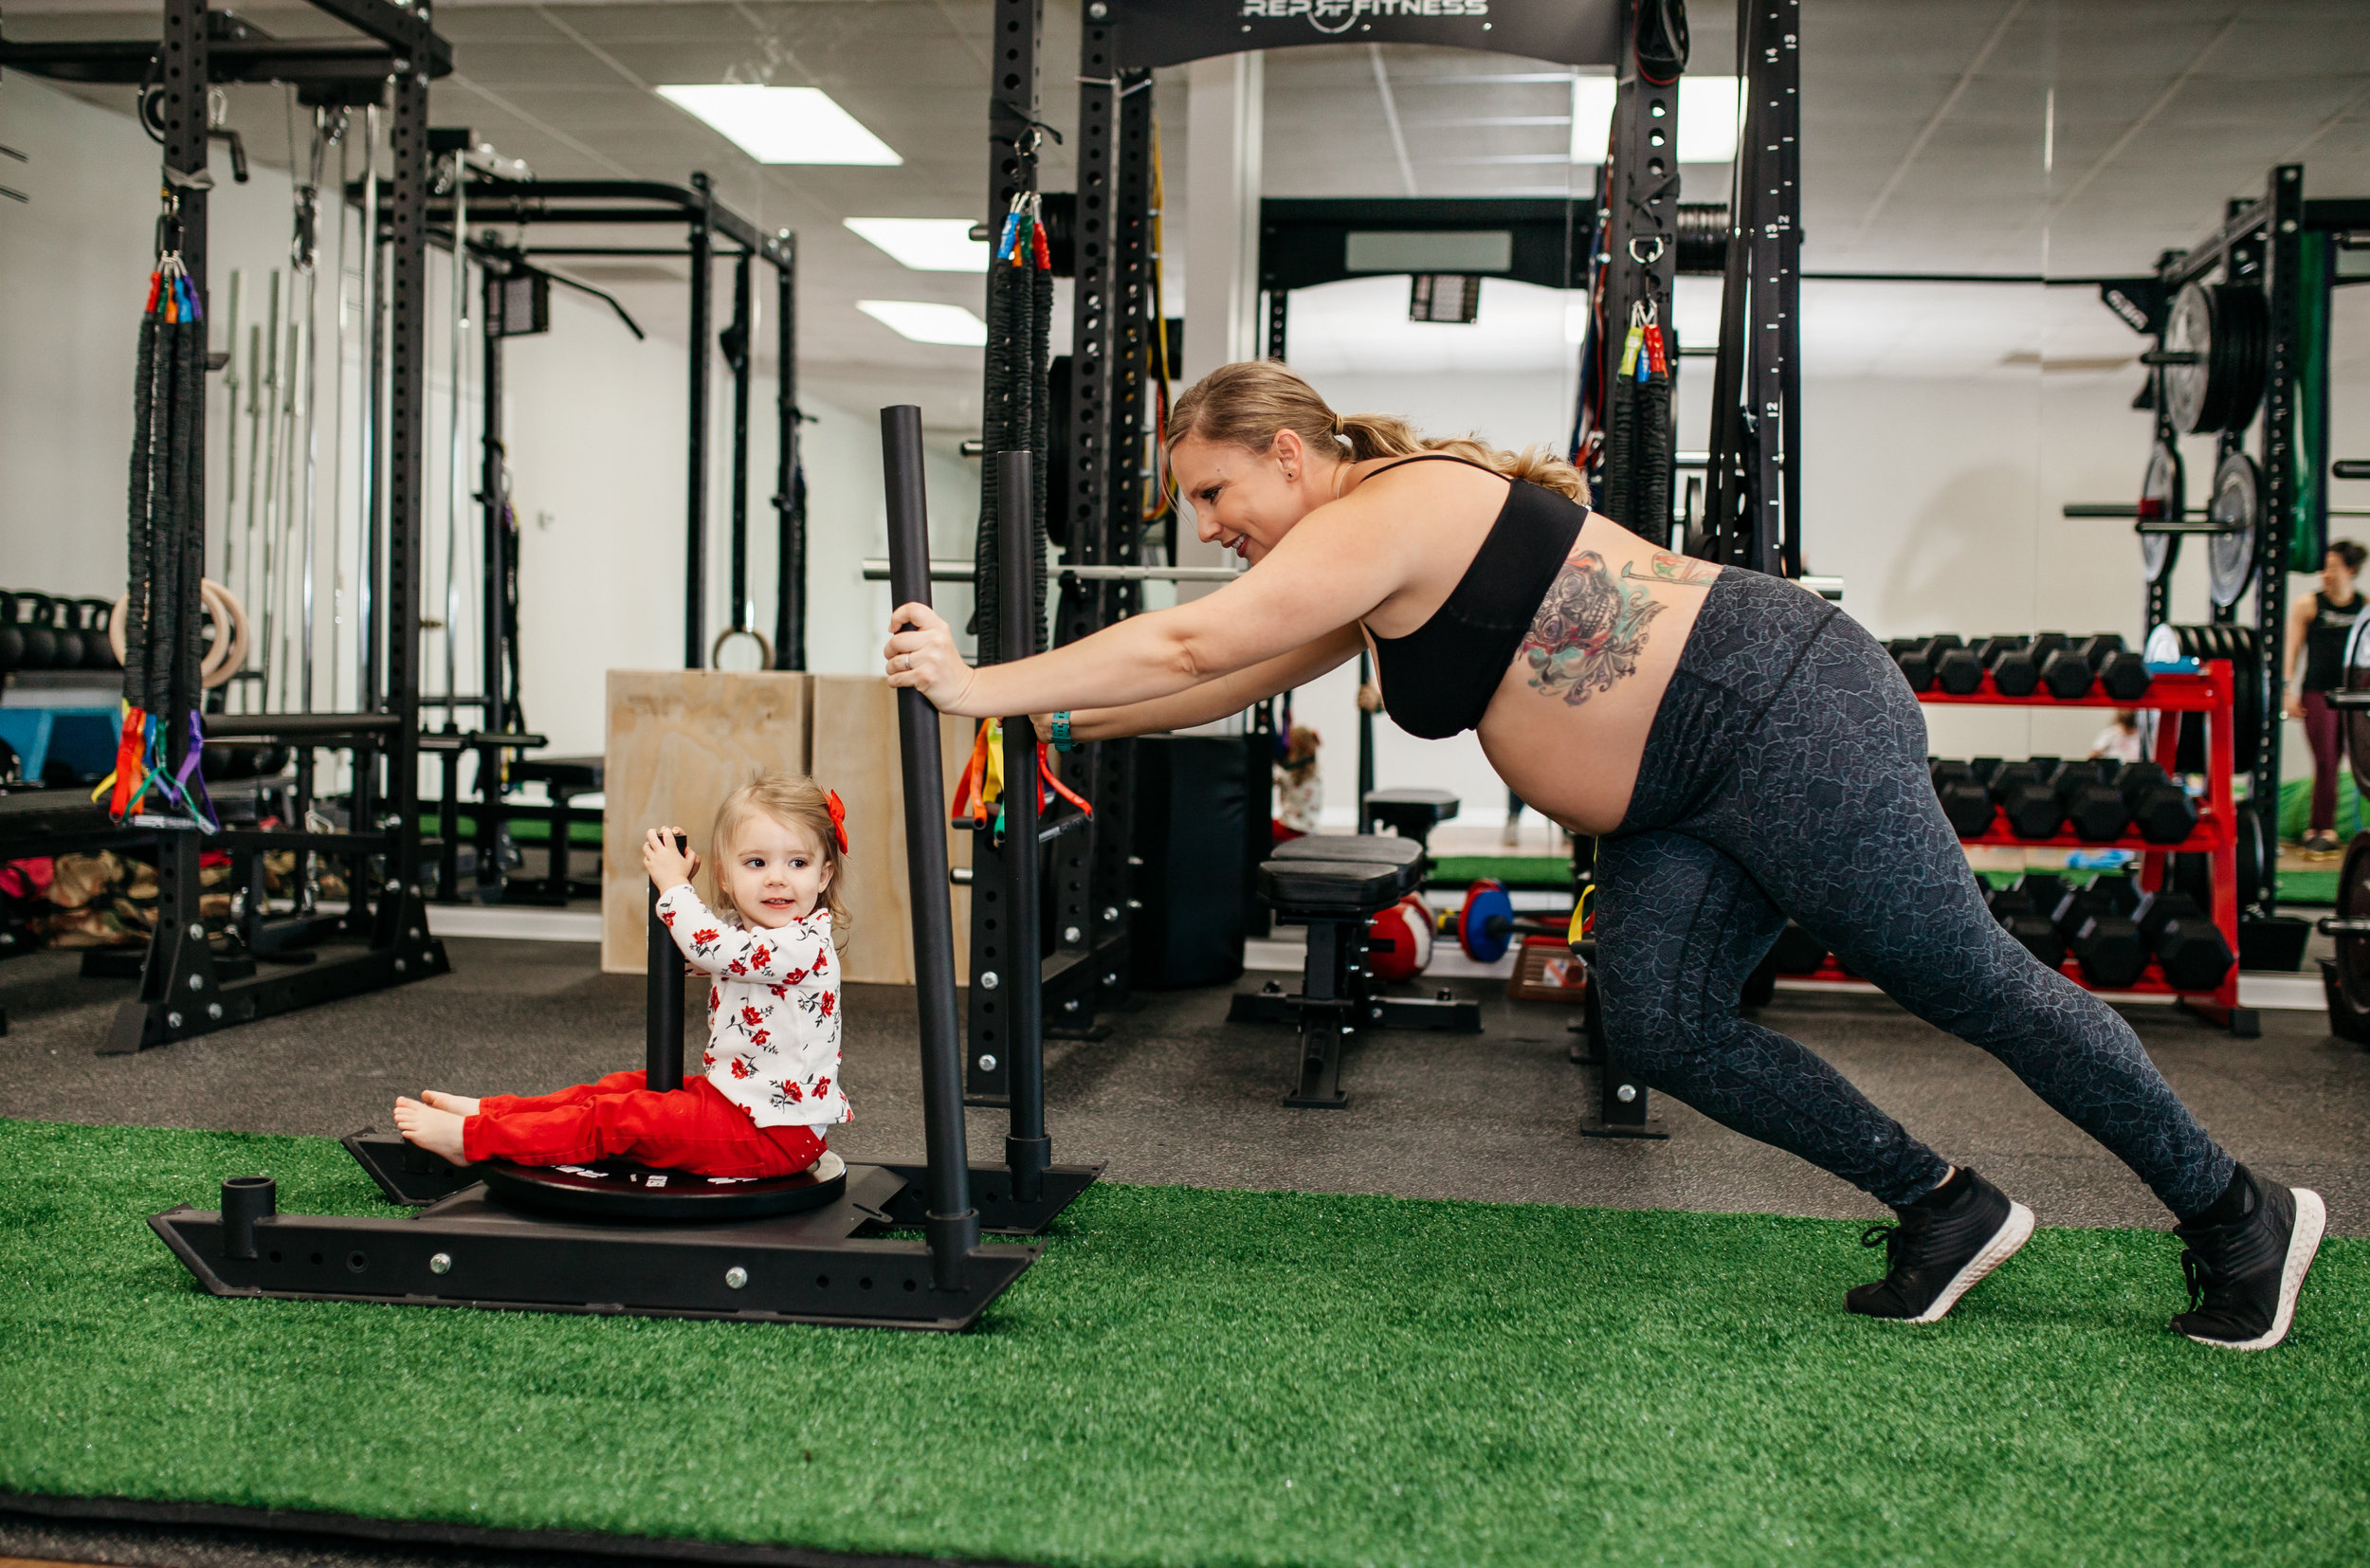 BABIES AND CHILDREN WELCOME - We work together to manage the children during workouts. Some days we babywear, some days we push strollers in circles, and some days they play quietly together in a corner. We welcome you as you are, and that includes your little ones!We have an area set aside in the gym that is for the children to play in, filled with toys, baby swings/bouncers, and walkers.